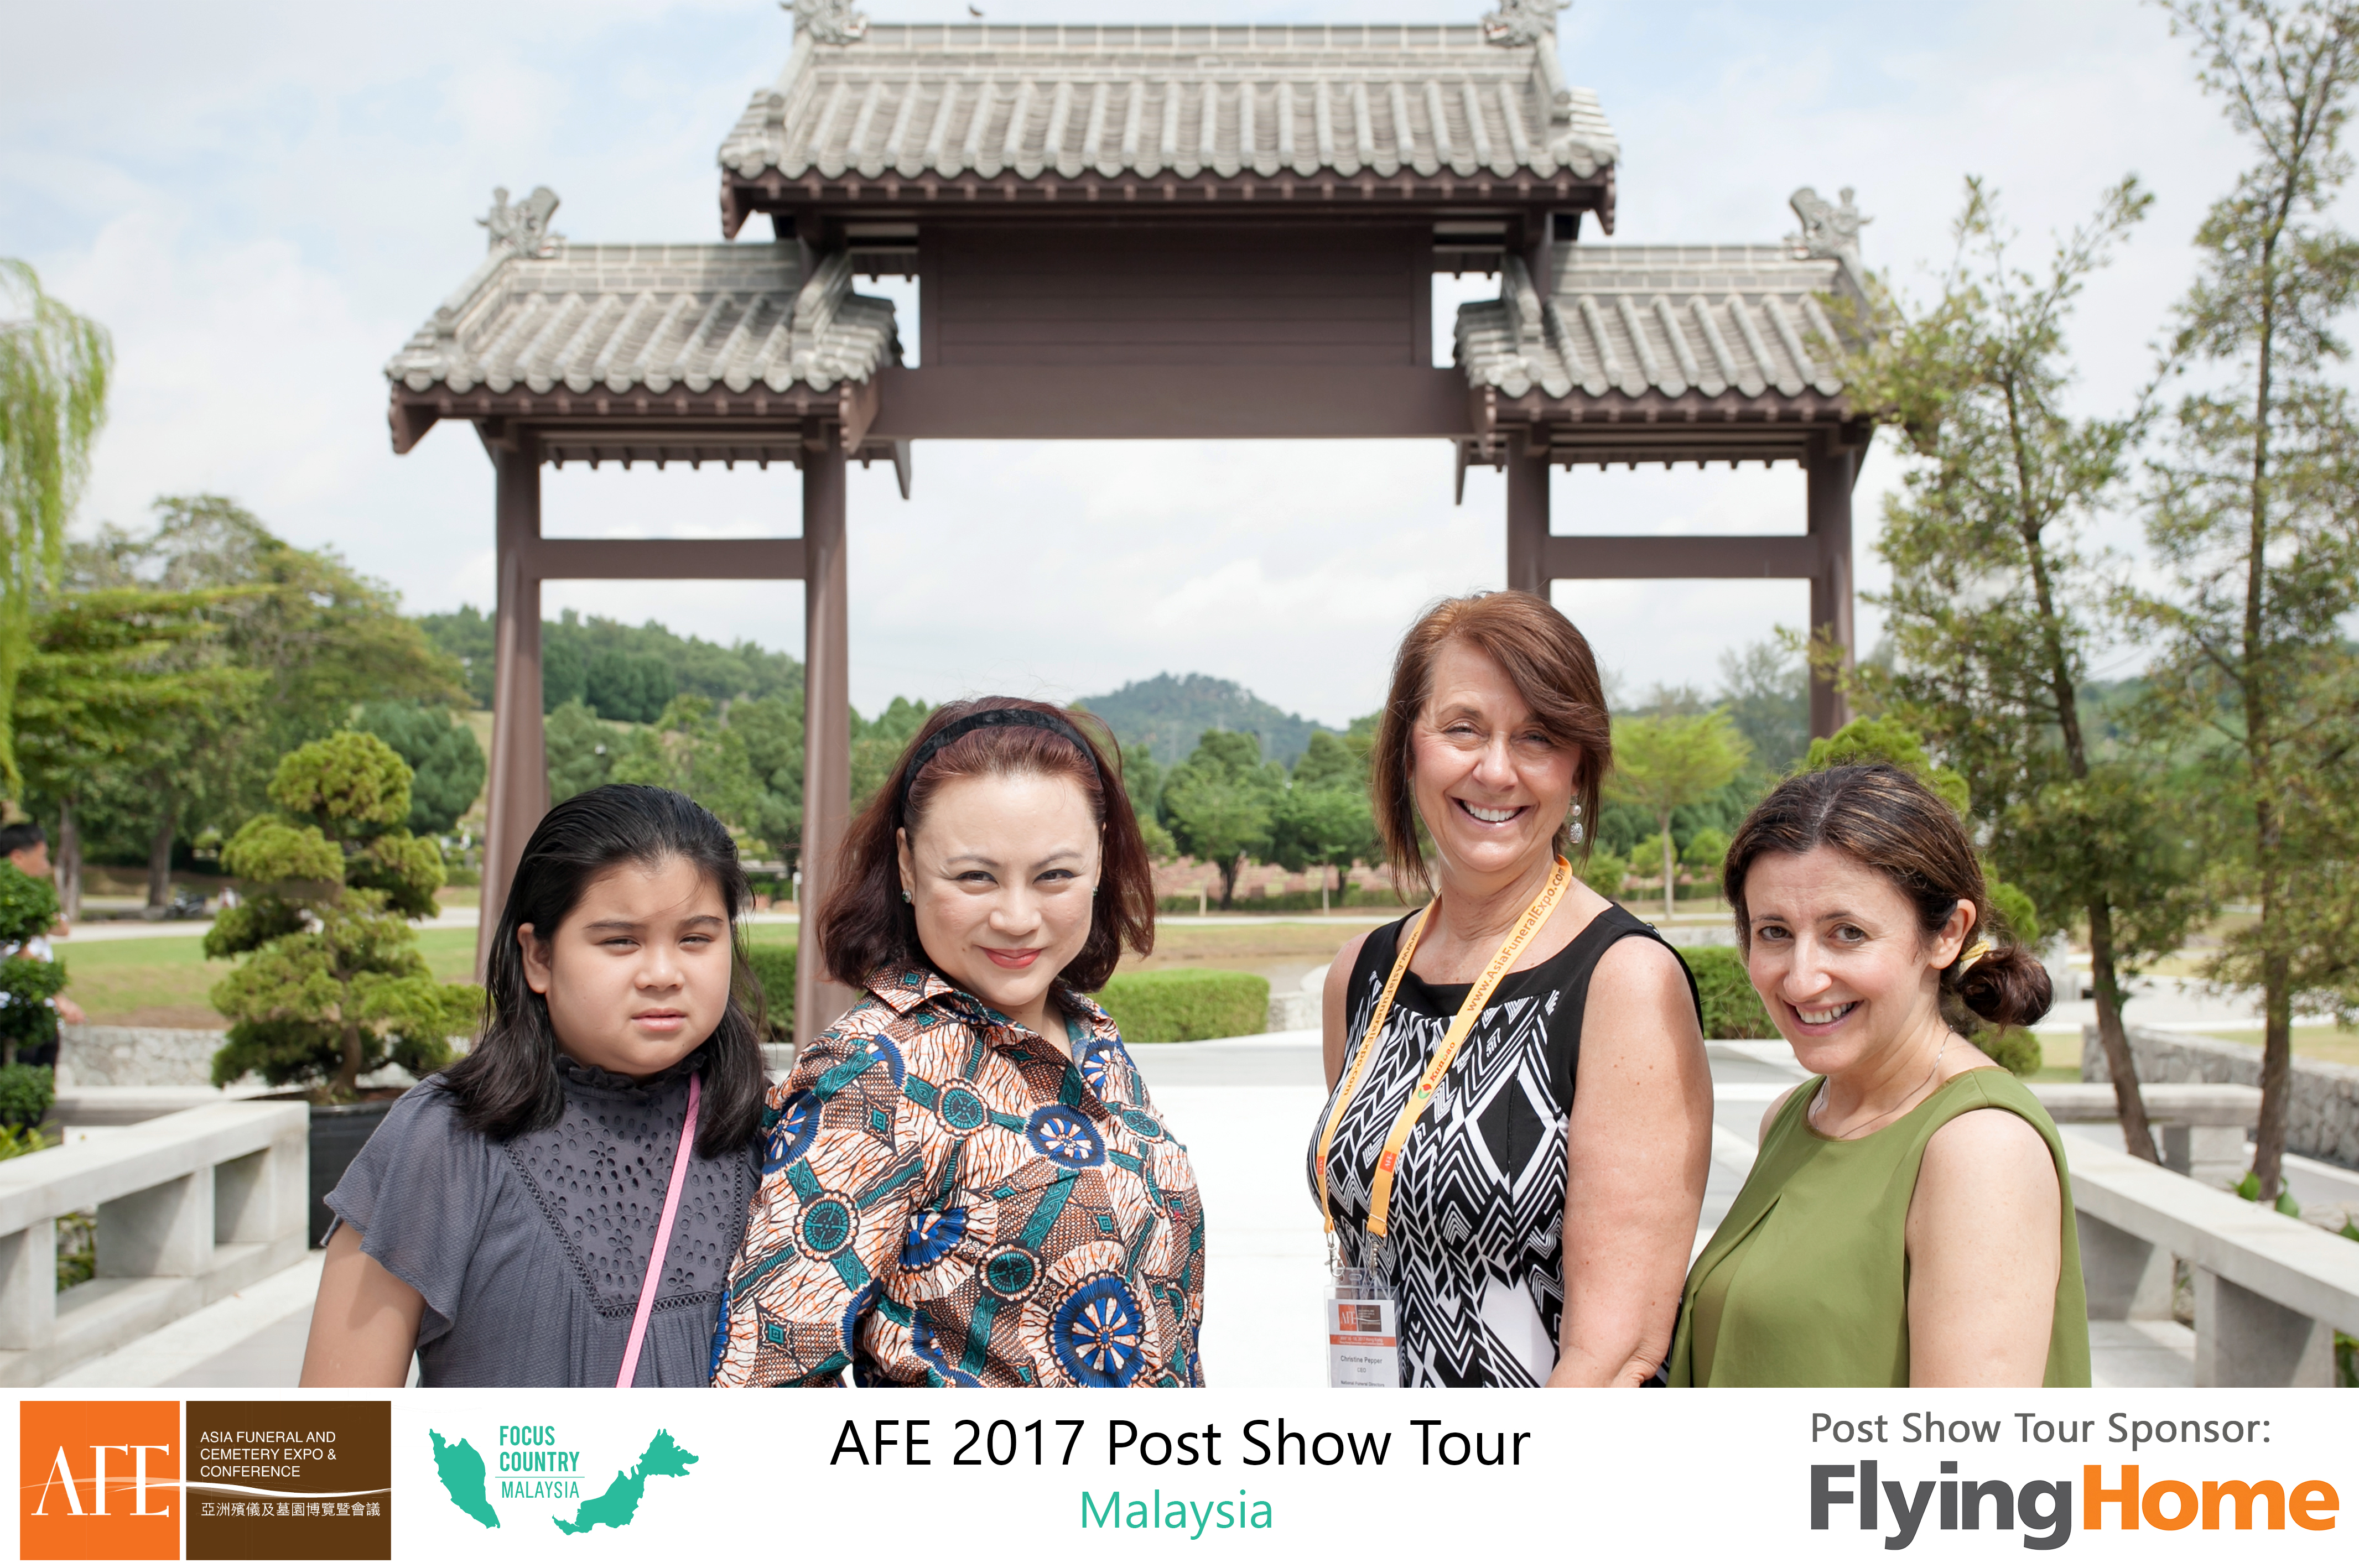 AFE Post Show Tour 2017 Day 3 -11